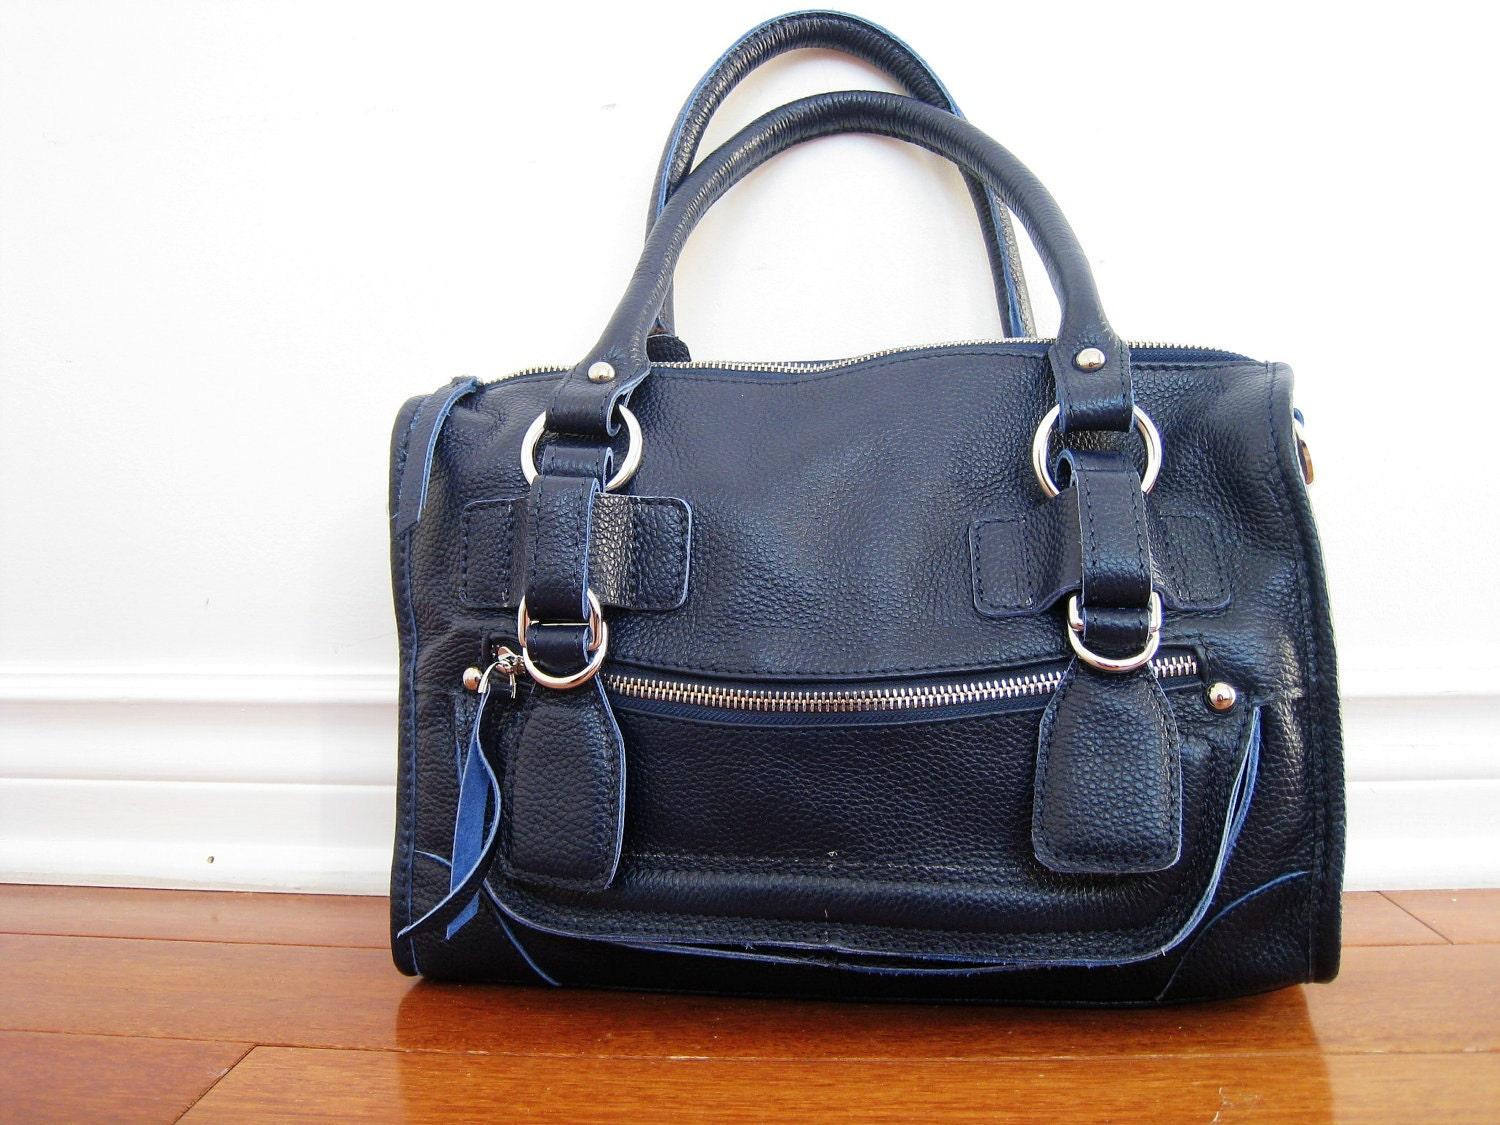 CLEO SMALL NAVY----Leather bag clip on laptop messenger satchel purse shoulder cross body bag